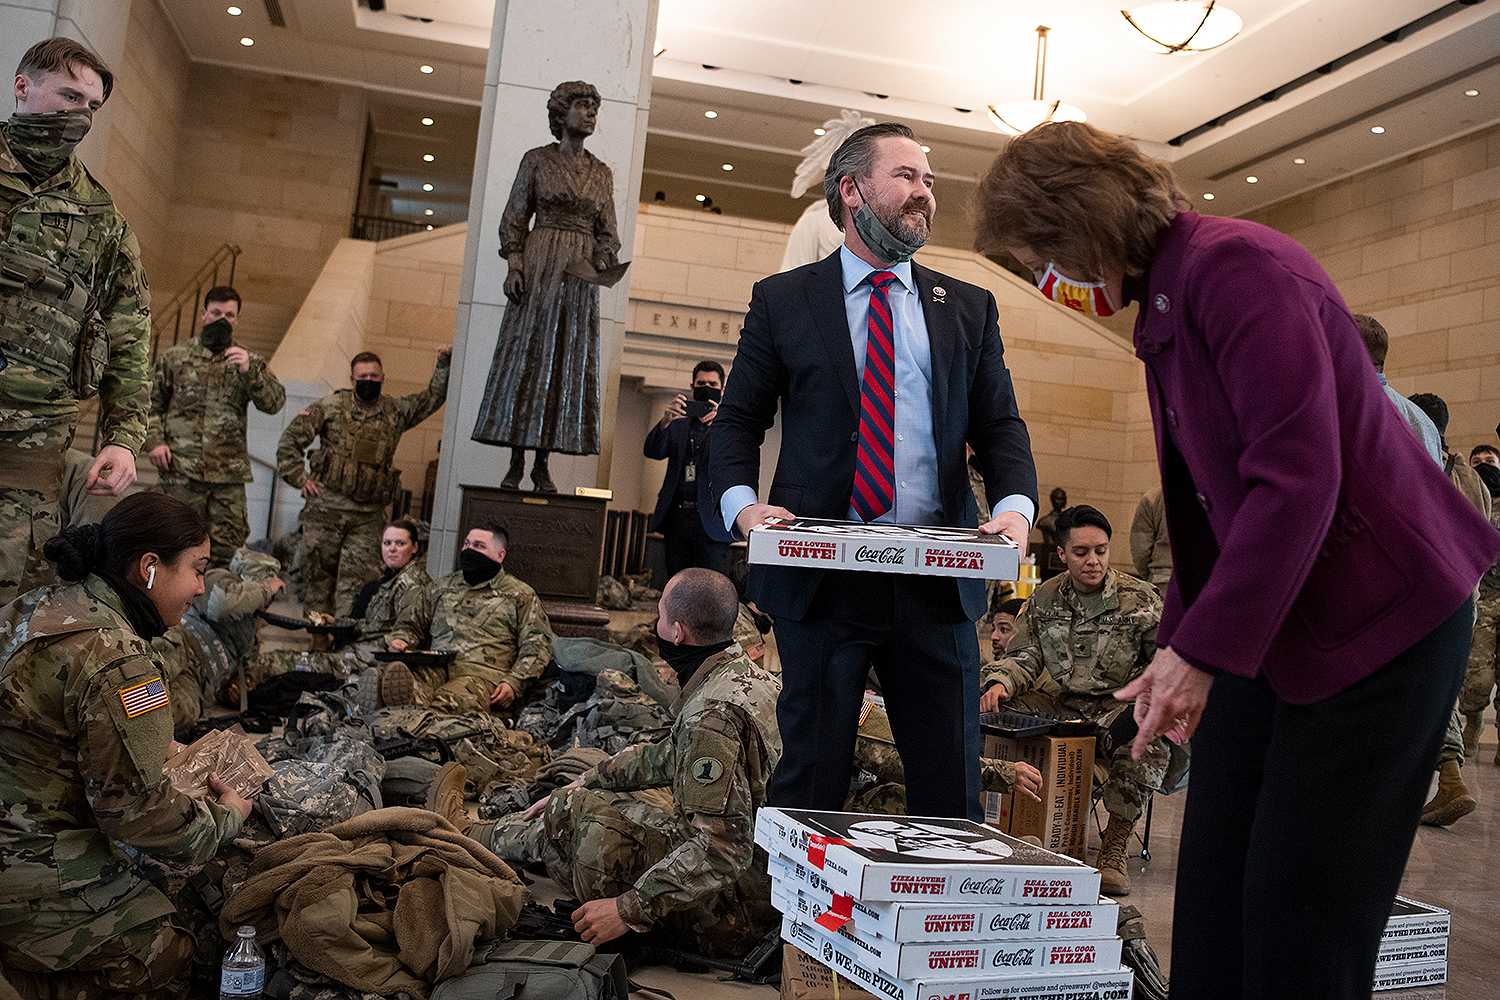 National Guard pizza